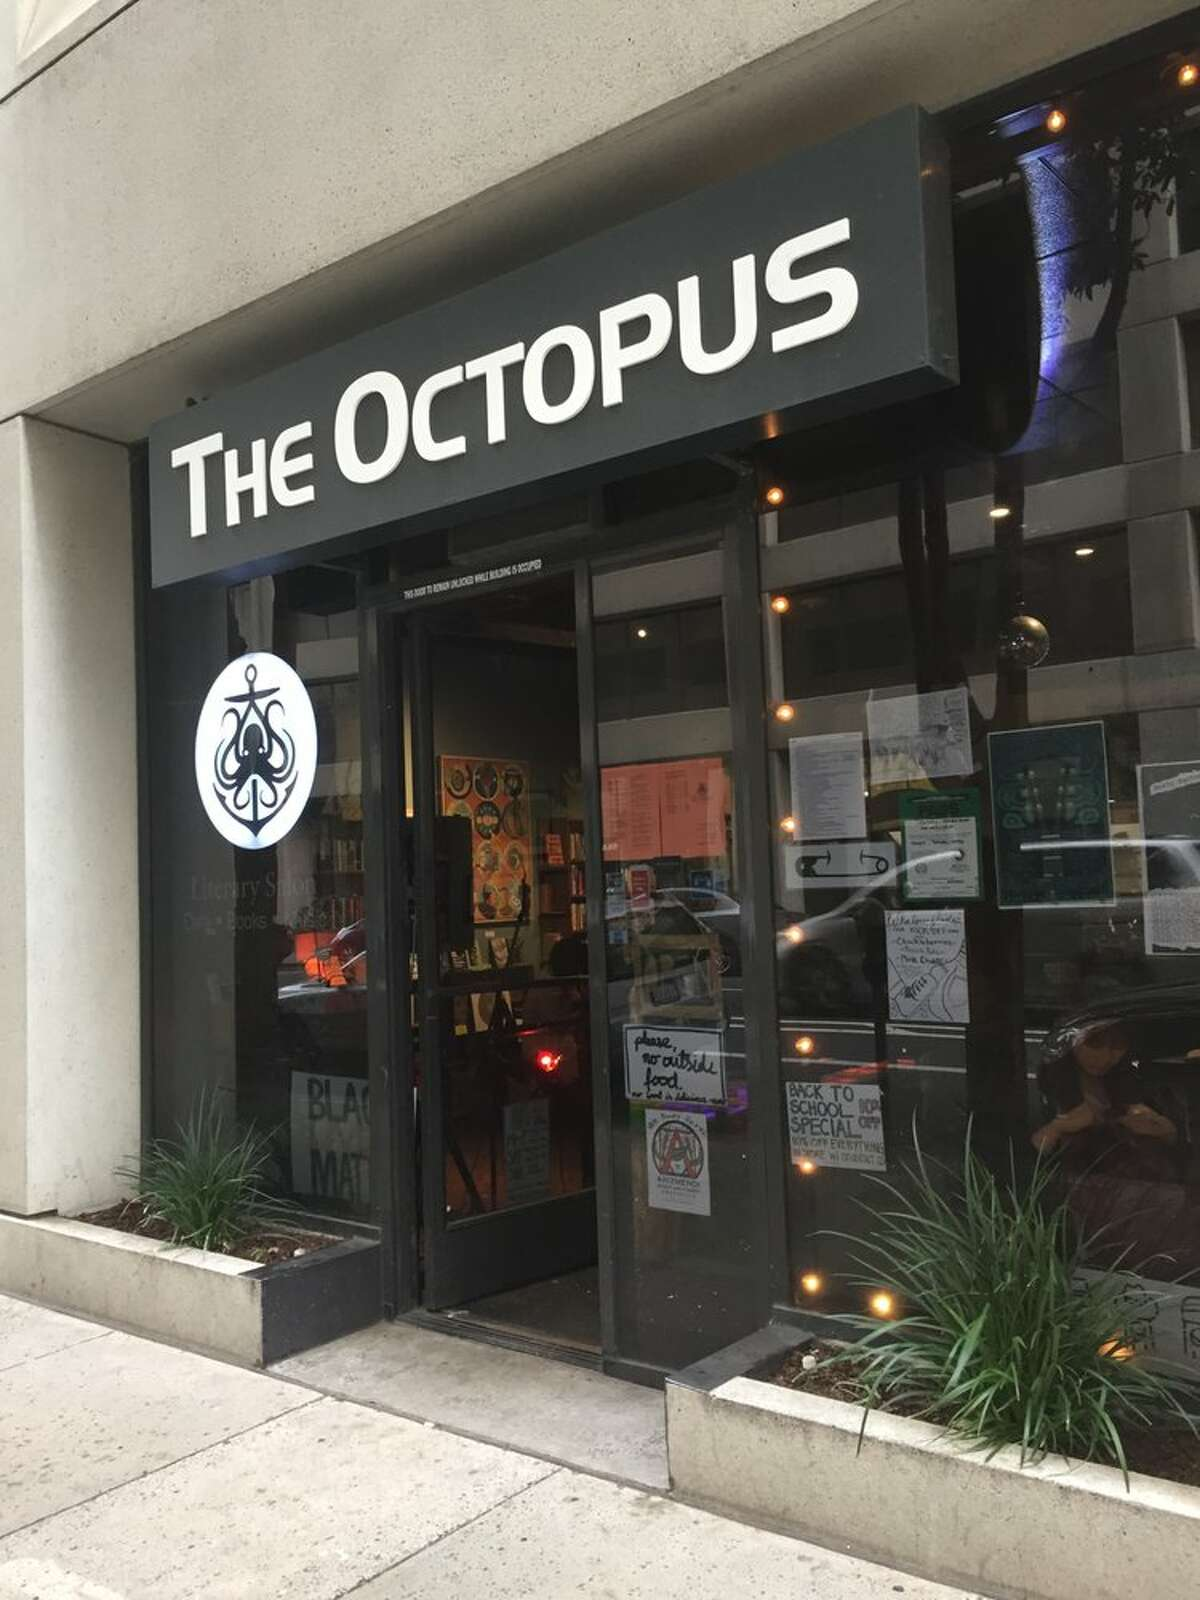 Octopus Literary Salon, a cafe/live performance venue/bookstore in Uptown Oakland, is closing its doors on August 31.